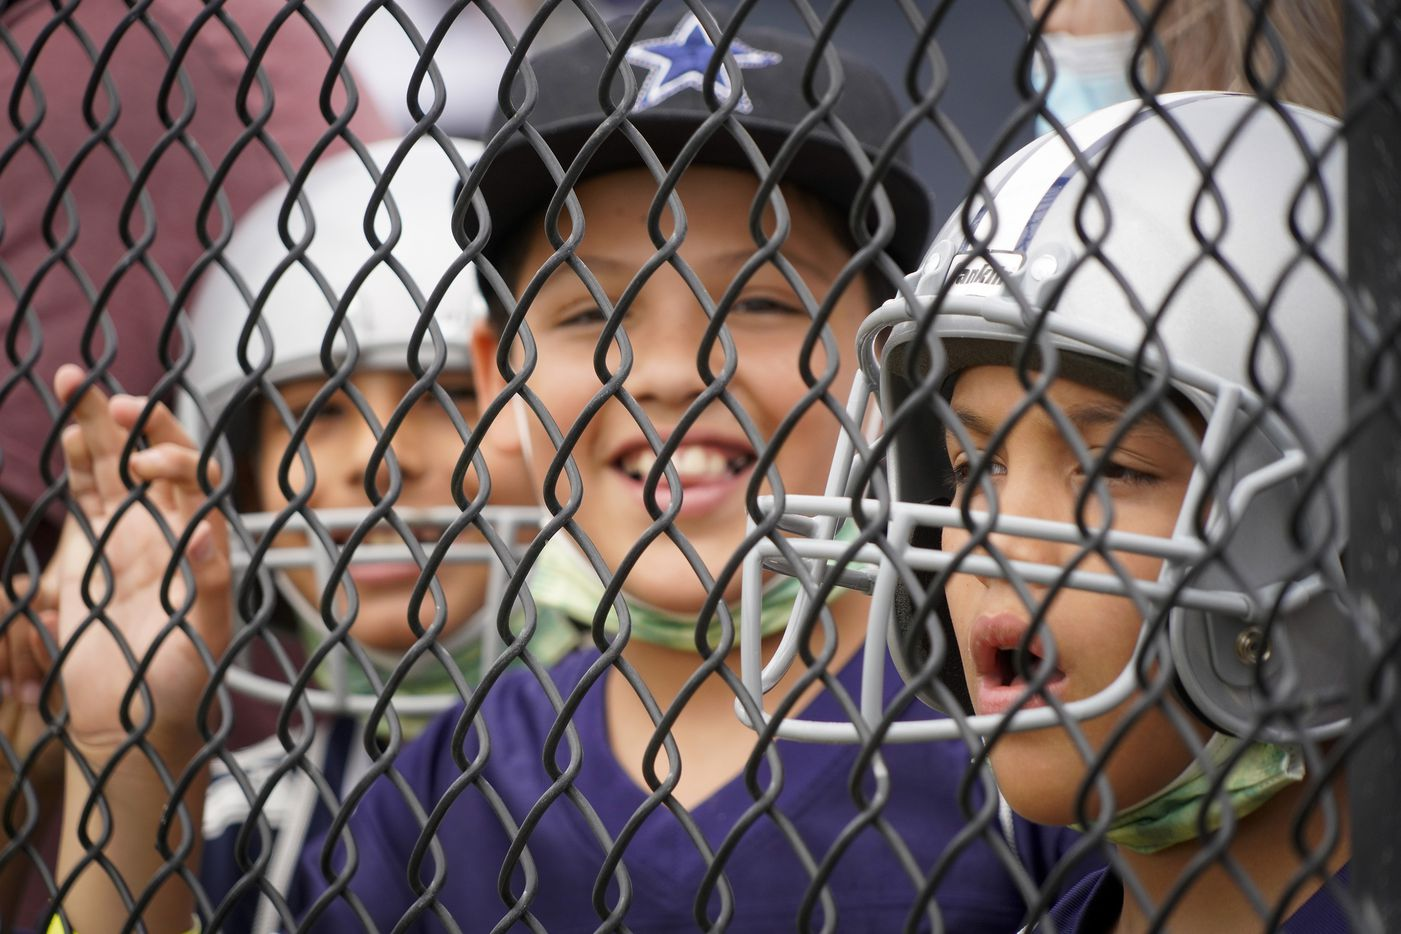 Dallas Cowboys fans press against a fence to watch a practice at training camp on Sunday, July 25, 2021, in Oxnard, Calif.